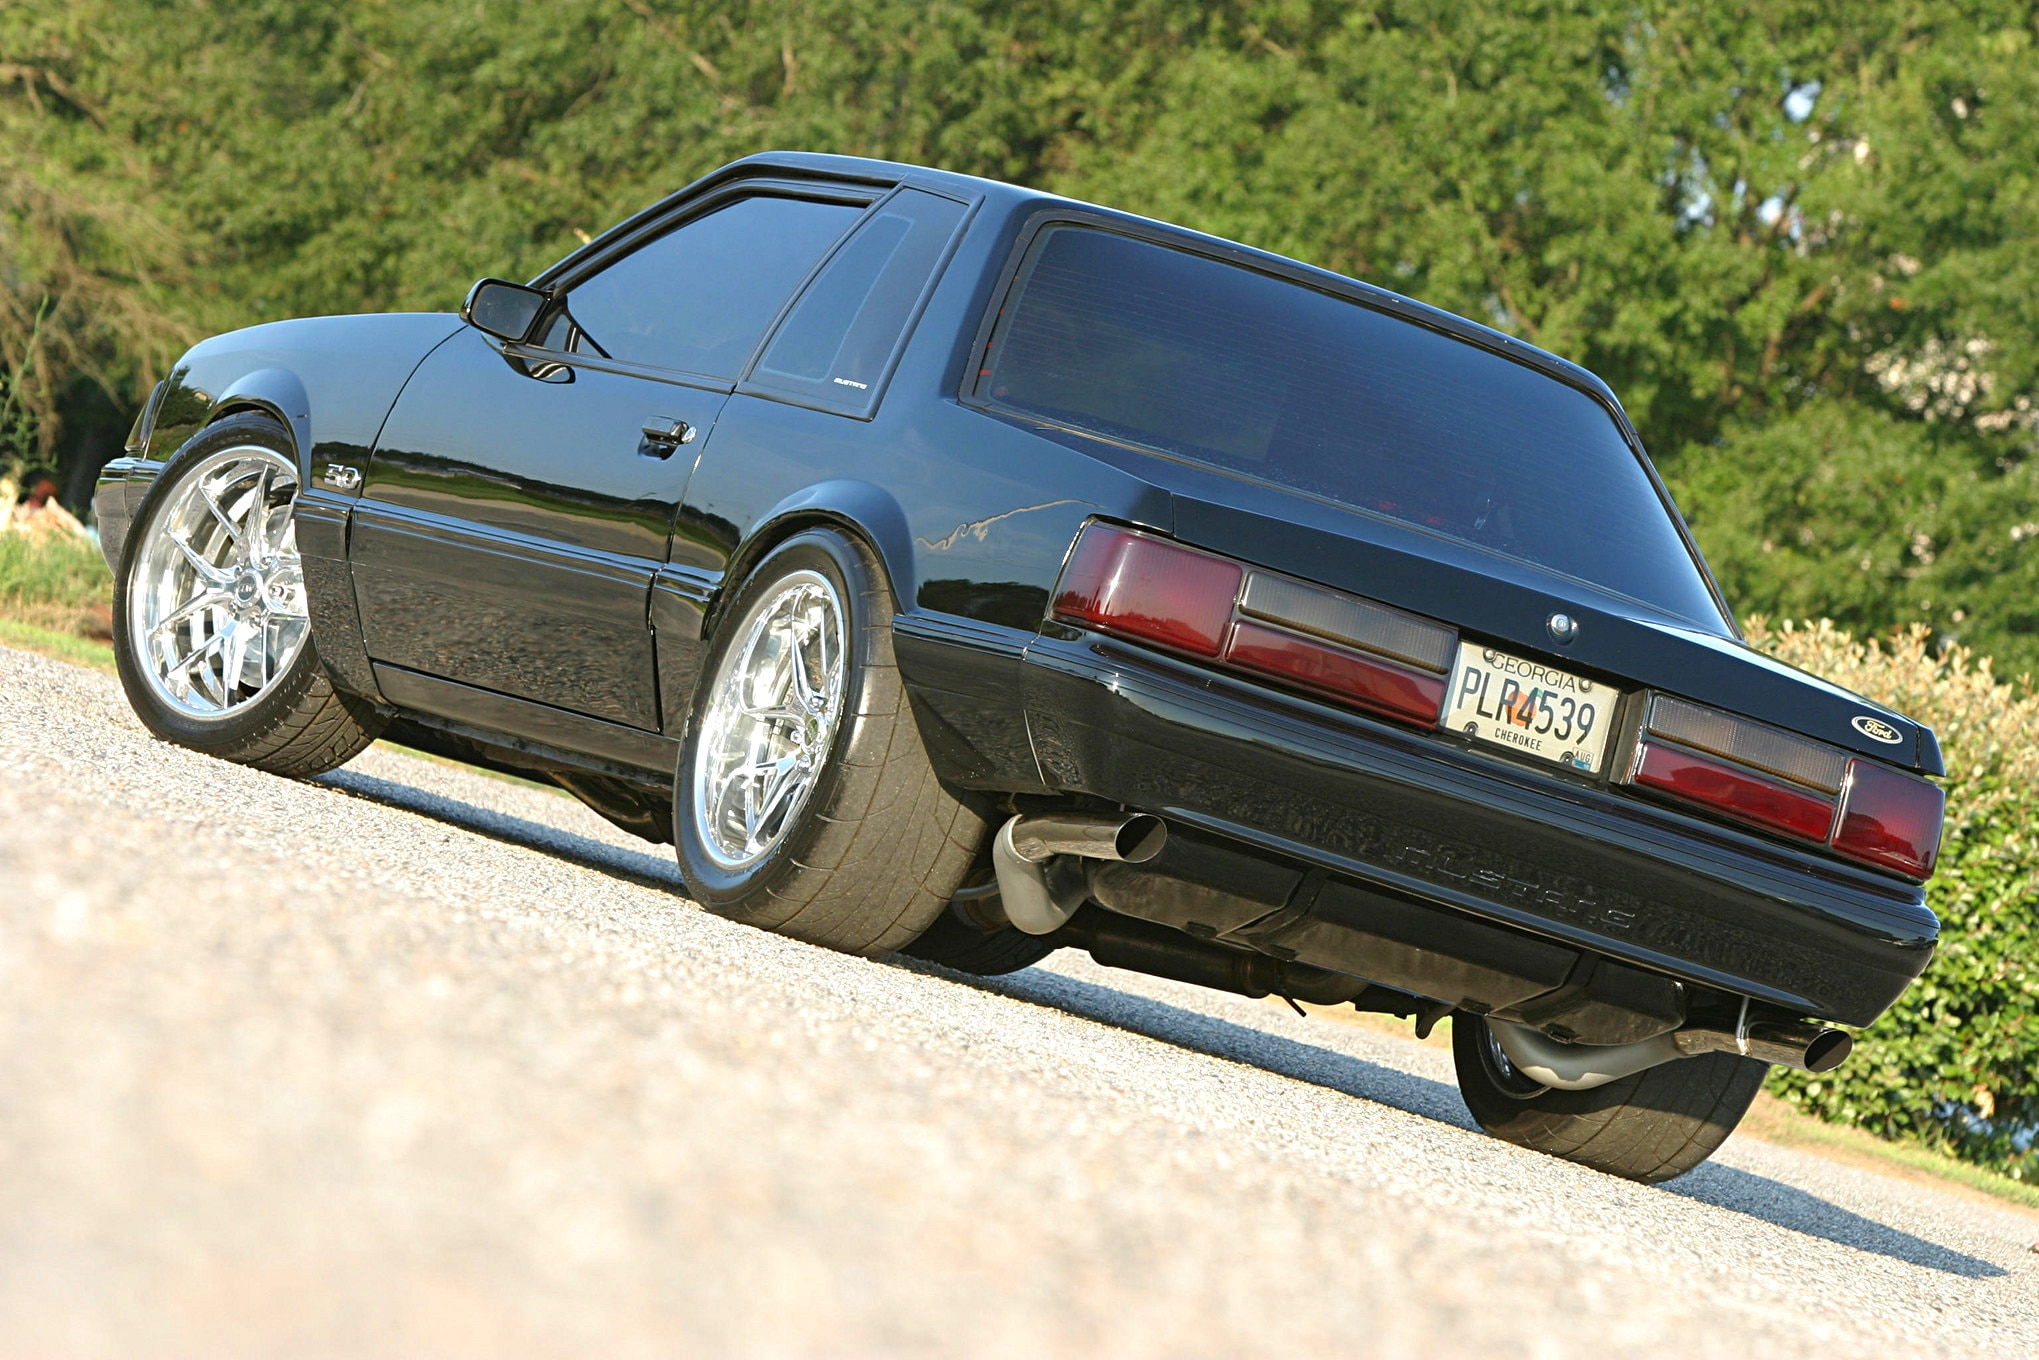 1988 Ford Mustang Lx Coupe Kody Smith Exterior 7